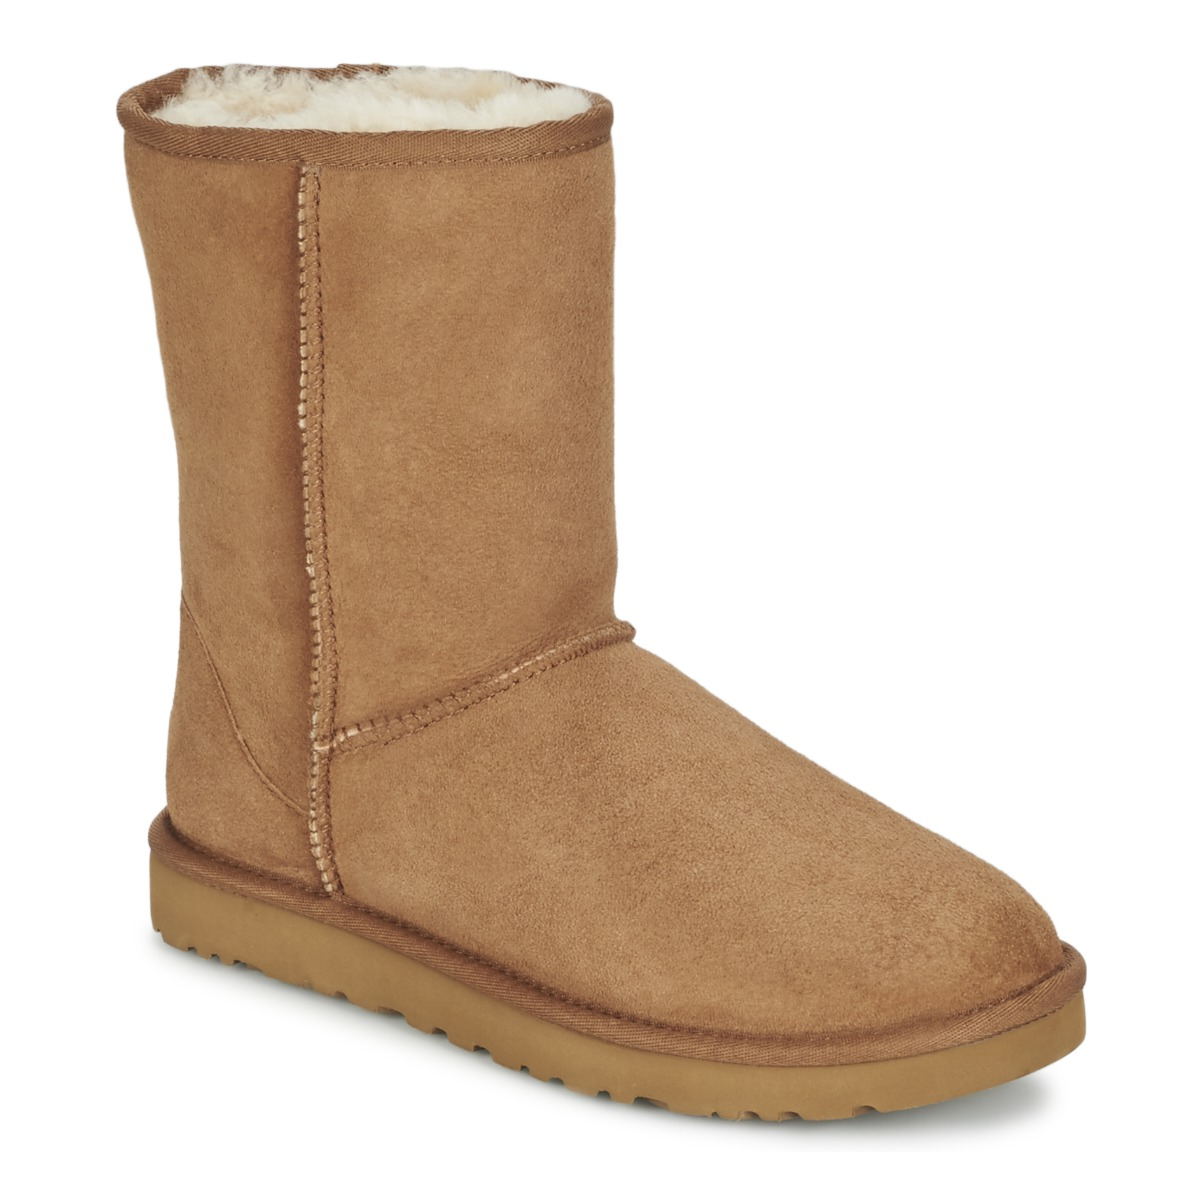 Women's Boots: Free Shipping on orders over $45 at Find the latest styles of Shoes from datingcafeinfohs.cf Your Online Women's Shoes Store! Get 5% in rewards with Club O!